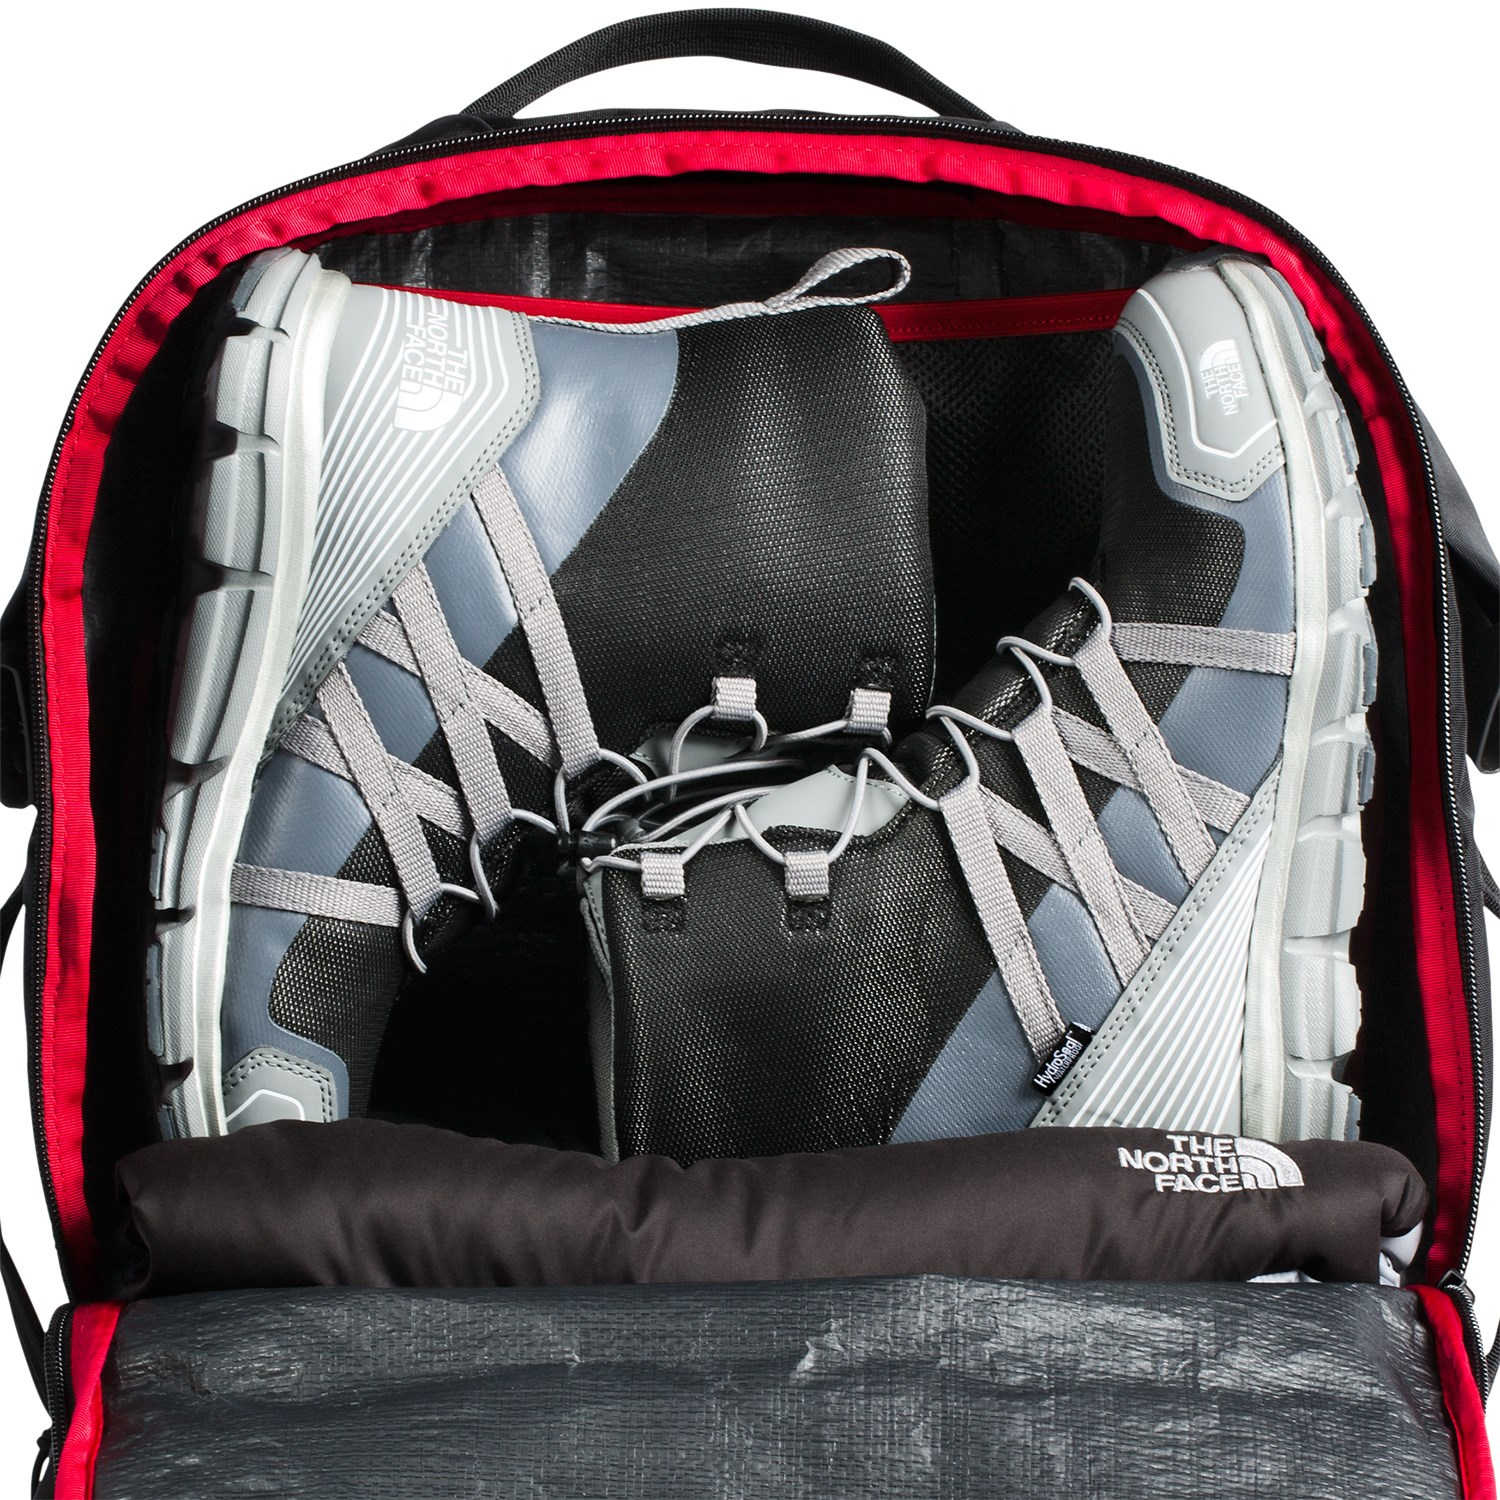 dbd237330 The North Face Icebox Boot Bag